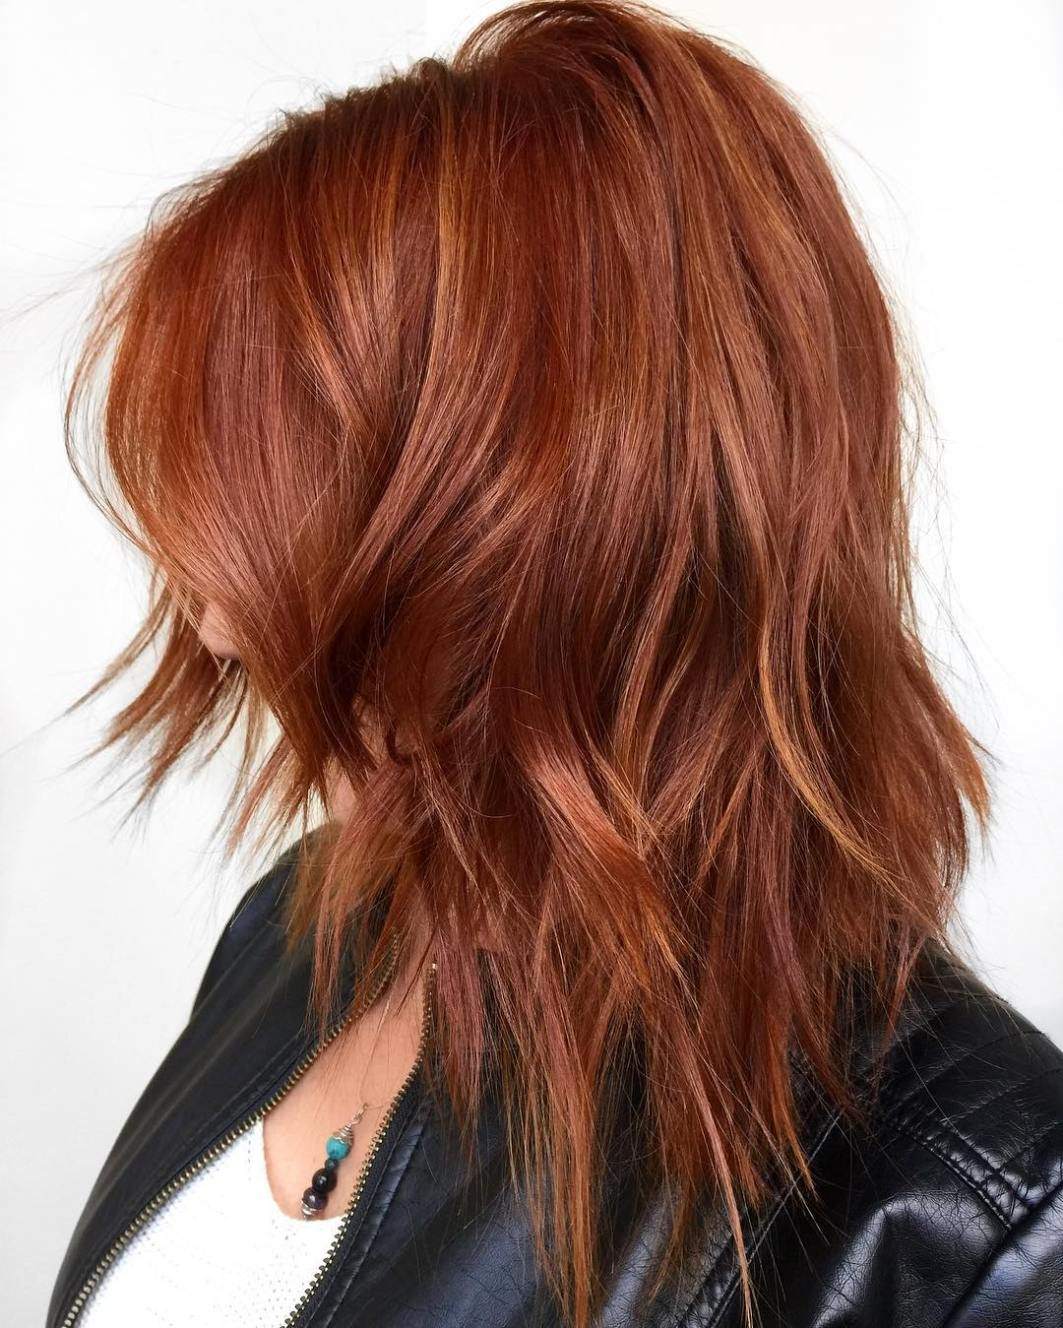 Forum on this topic: 60 Auburn Hair Colors to Emphasize Your , 60-auburn-hair-colors-to-emphasize-your/